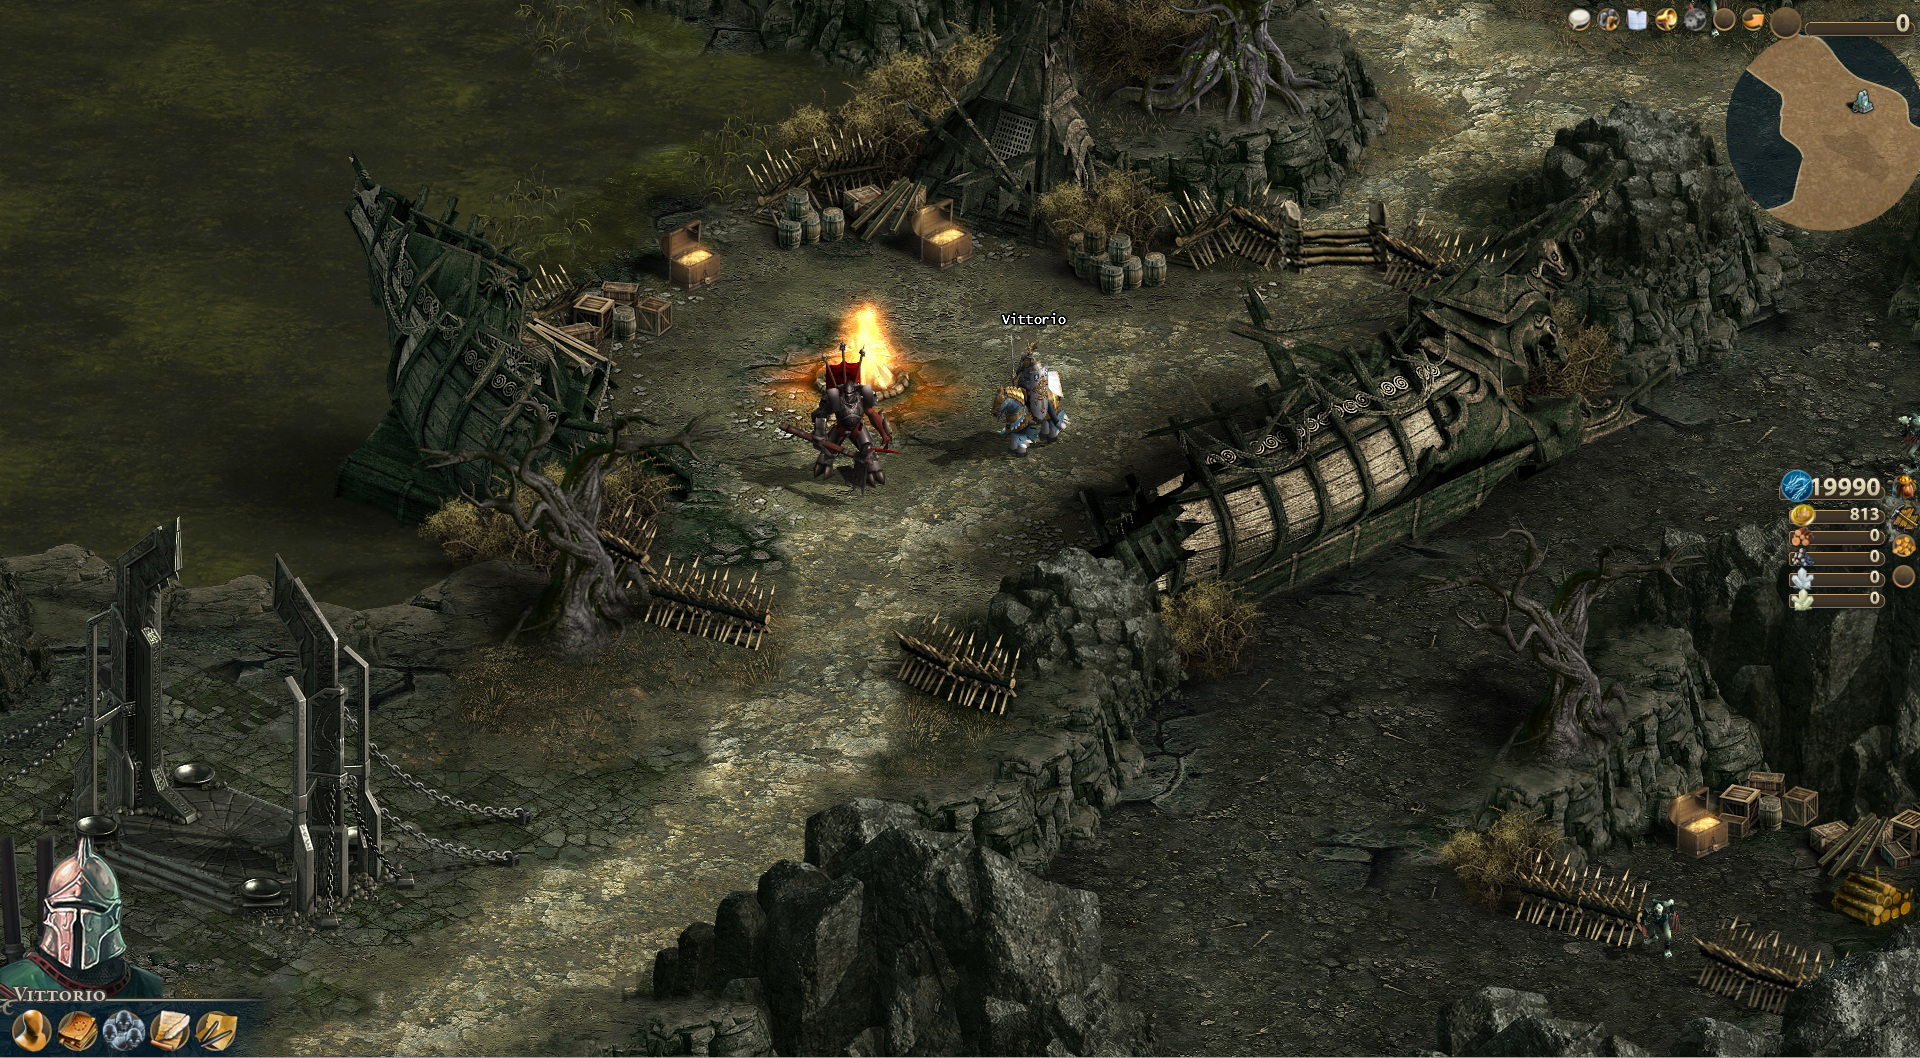 HQ Heroes Of Might And Magic Online Wallpapers | File 1581.19Kb